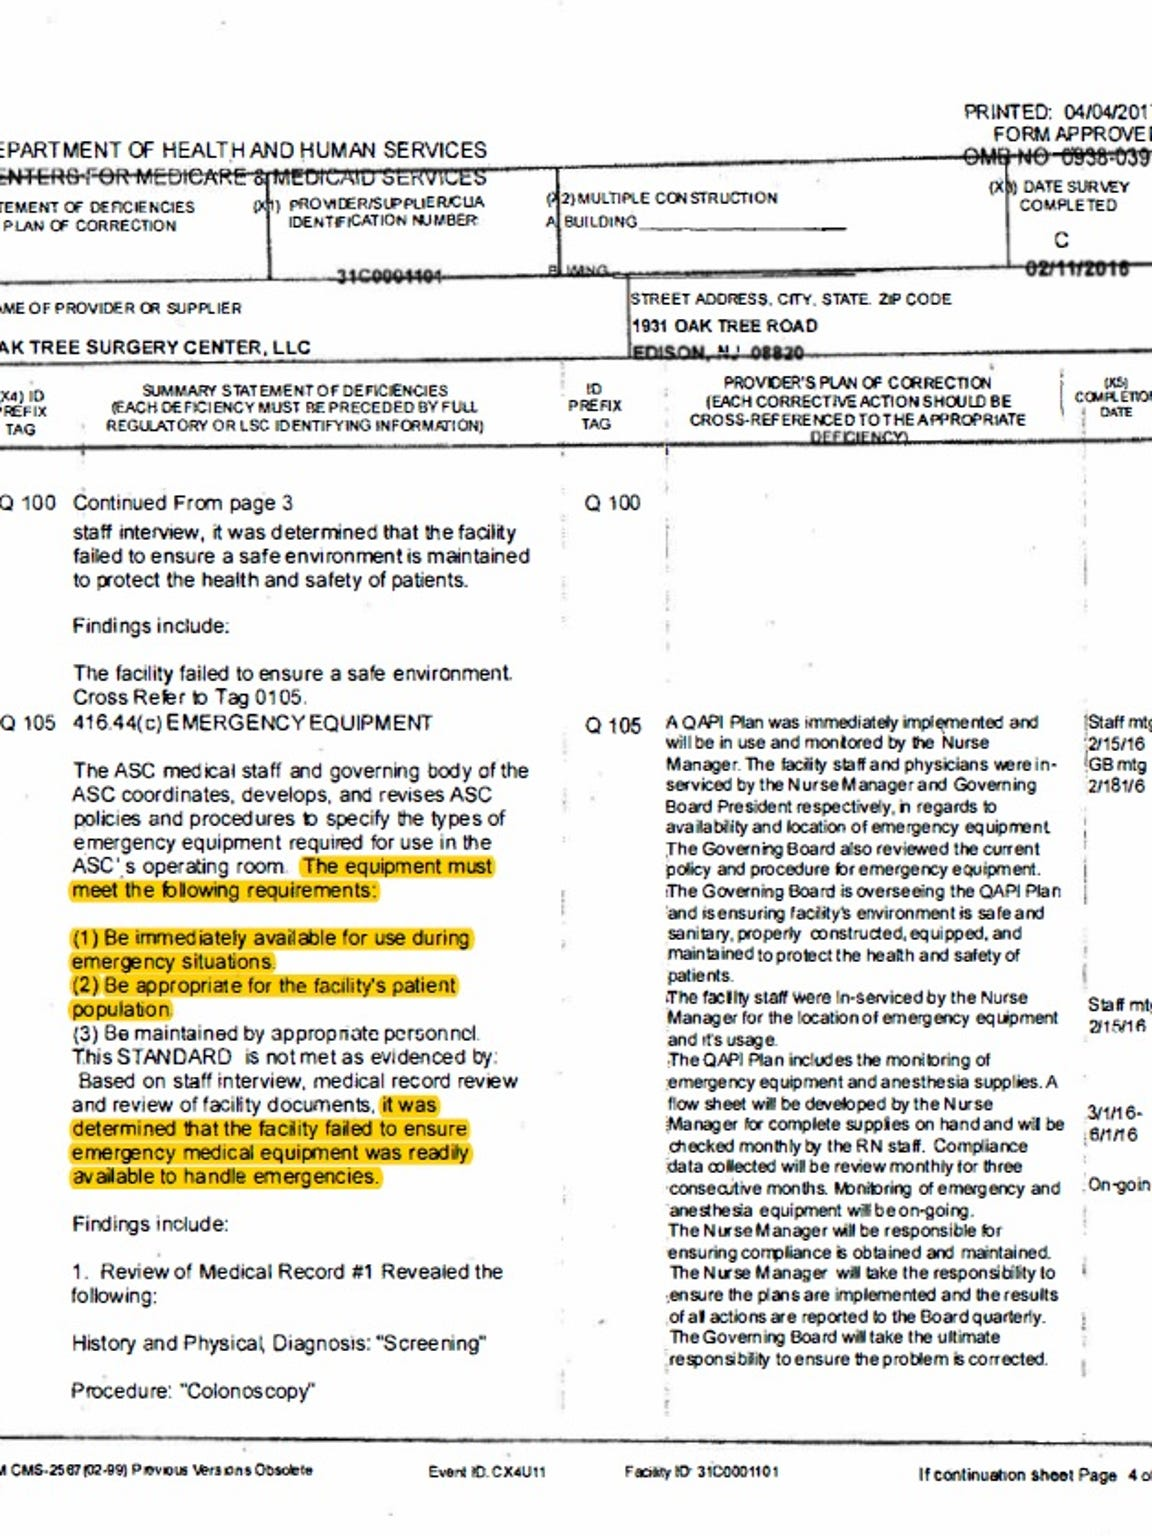 A page from the Health and Human Services inspection